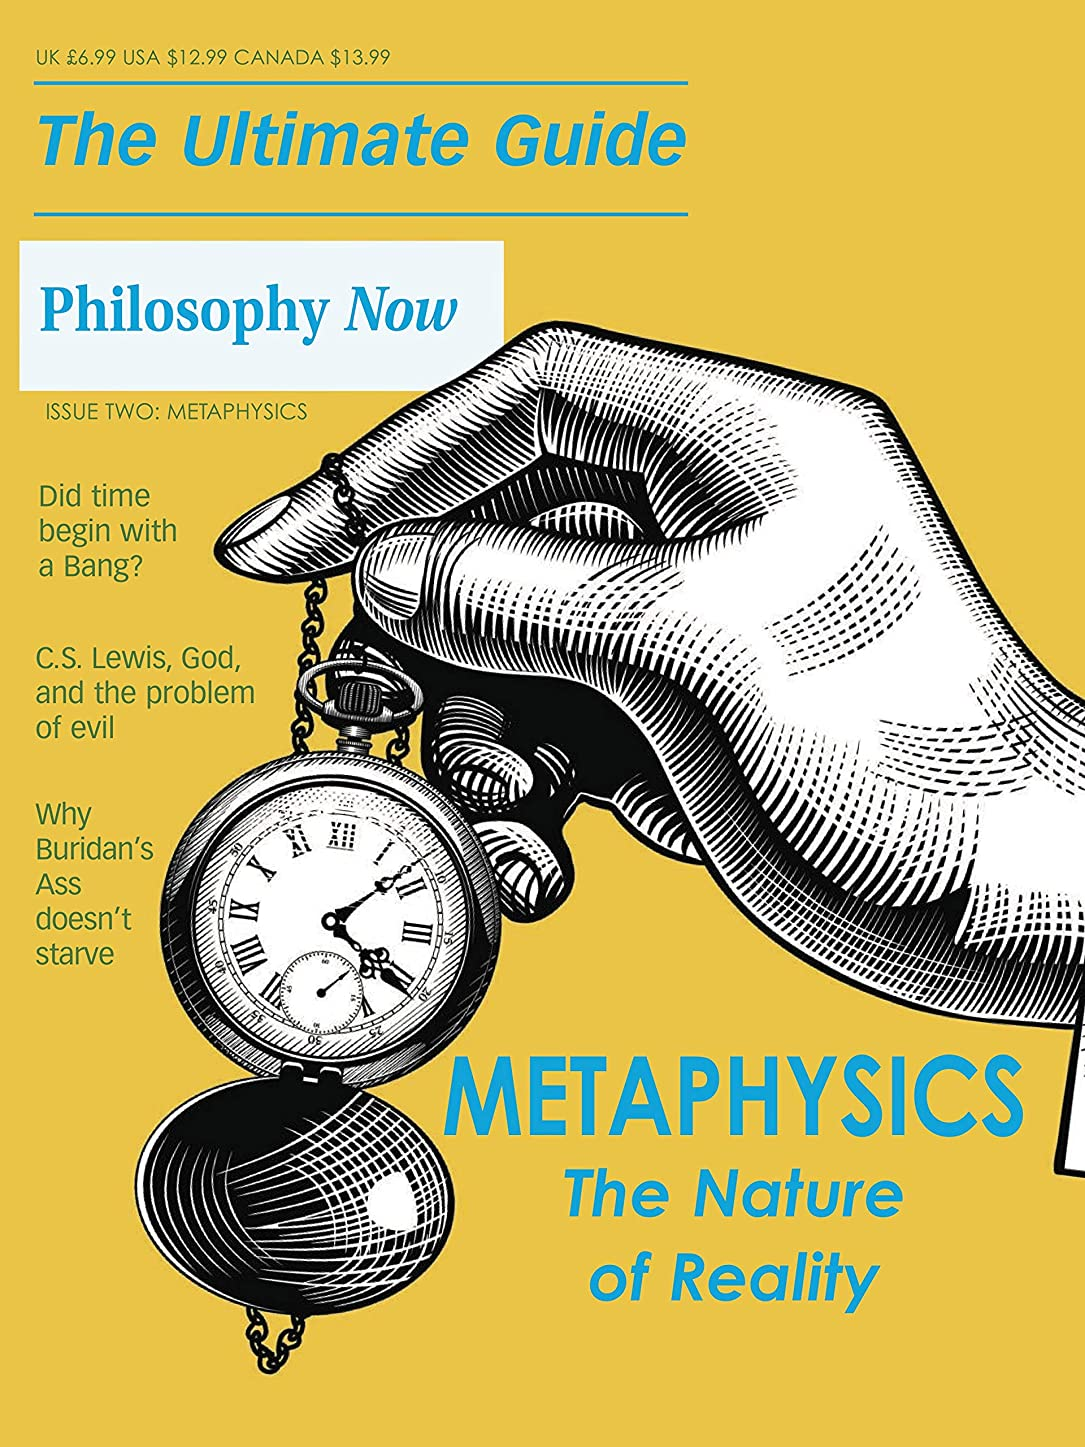 グラフトランスペアレント燃やすThe Ultimate Guide to Metaphysics: from Philosophy Now (Ultimate Guides to Philosophy Book 2) (English Edition)